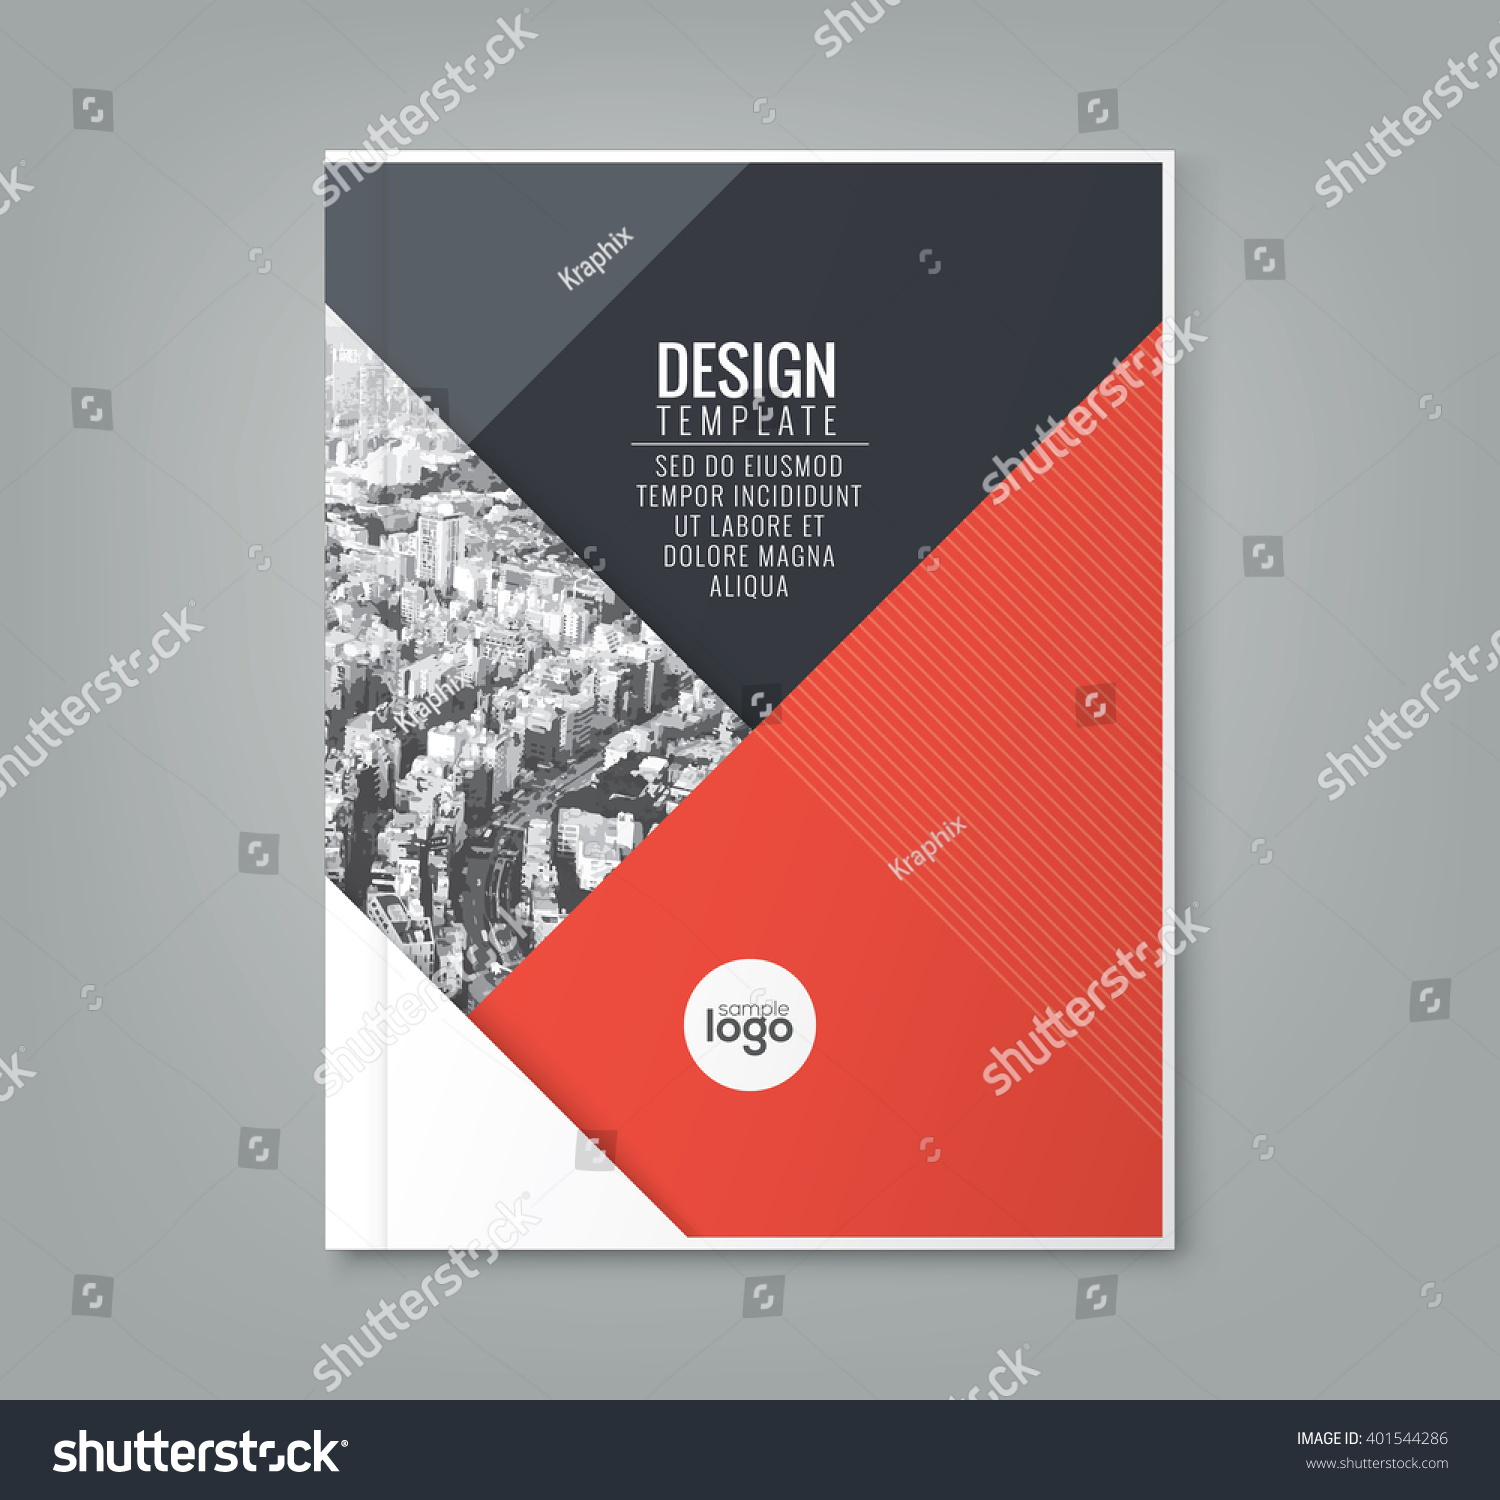 Simple Book Cover Design Template : Minimal simple red color design template stock vector